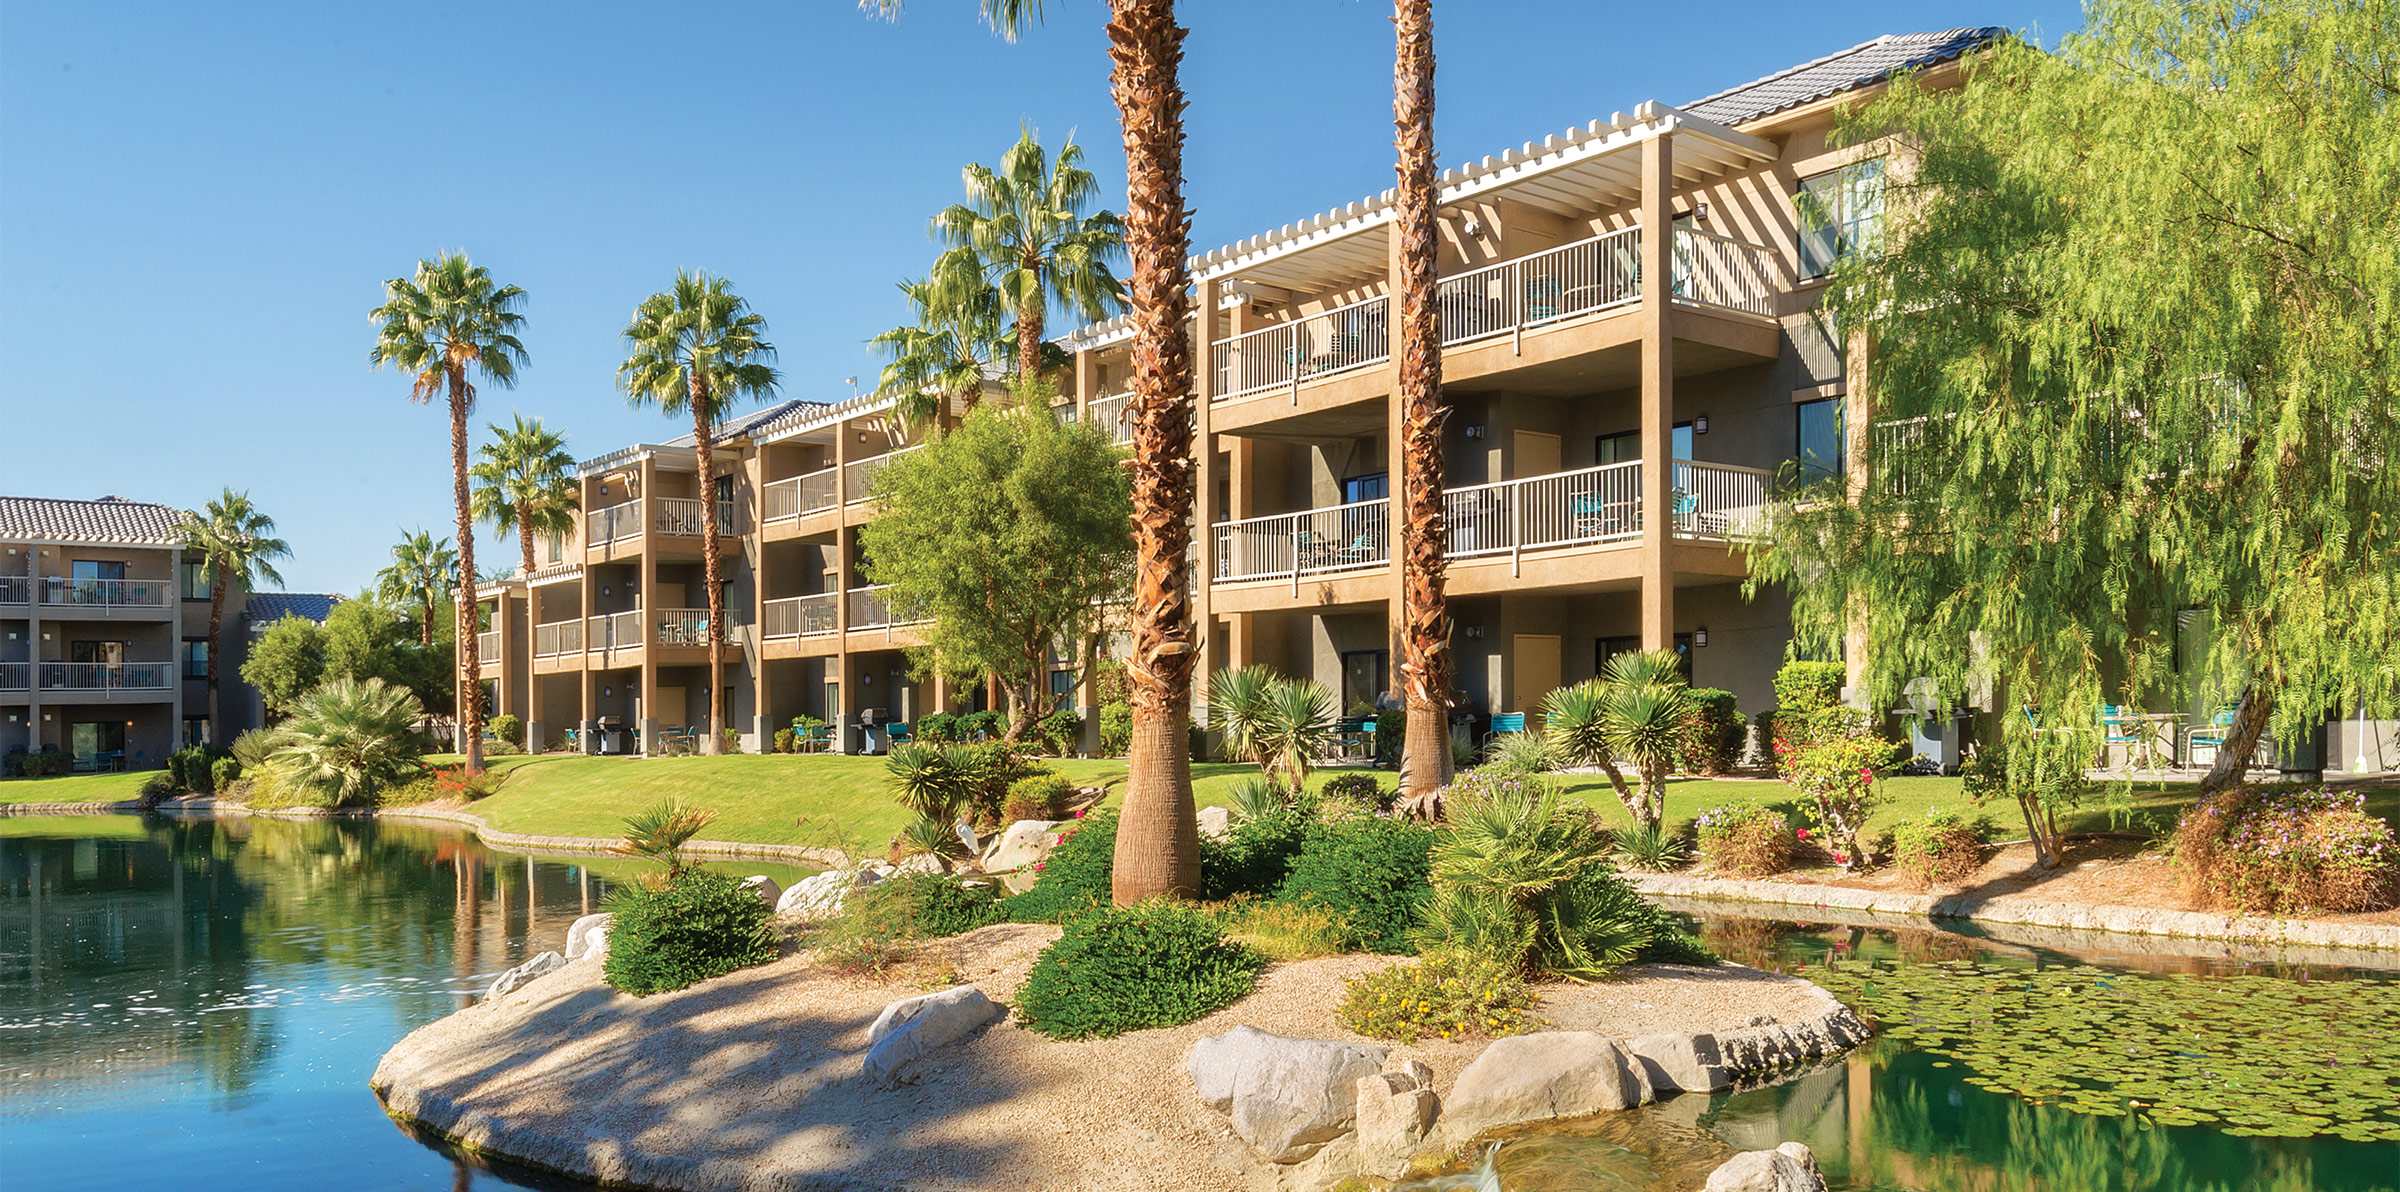 Apartment 2 Bedroom 2 Bath In Indio  CA   Palm Springs  5 miles from COACHELLA photo 18117927